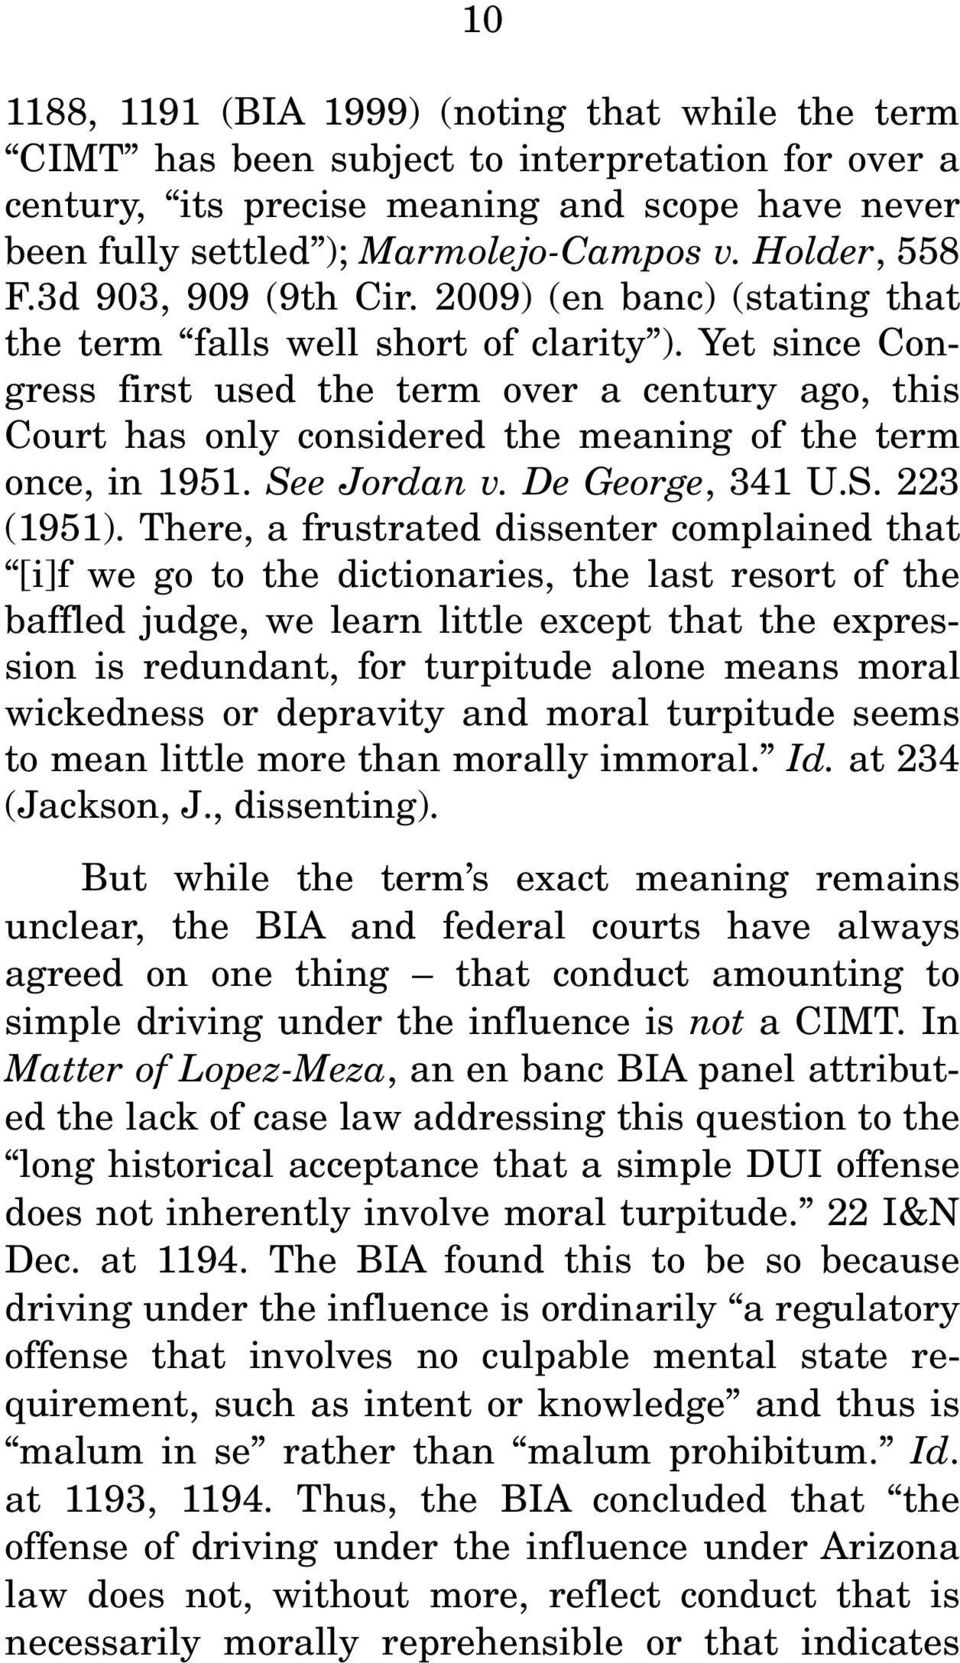 Yet since Congress first used the term over a century ago, this Court has only considered the meaning of the term once, in 1951. See Jordan v. De George, 341 U.S. 223 (1951).